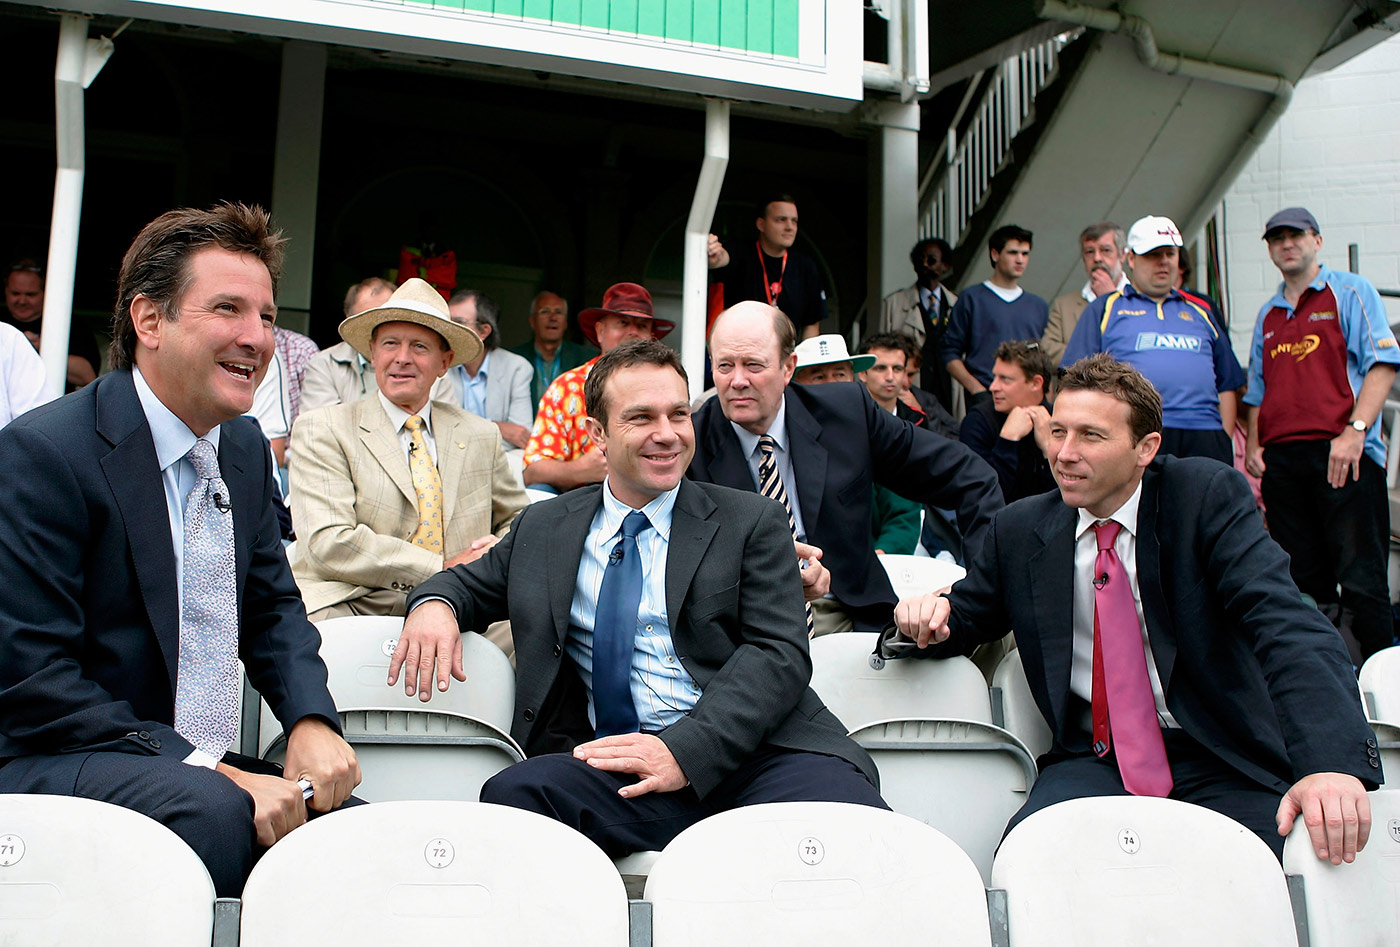 Michael Atherton (far right, first row), with other luminaries of the Channel 4 team, is